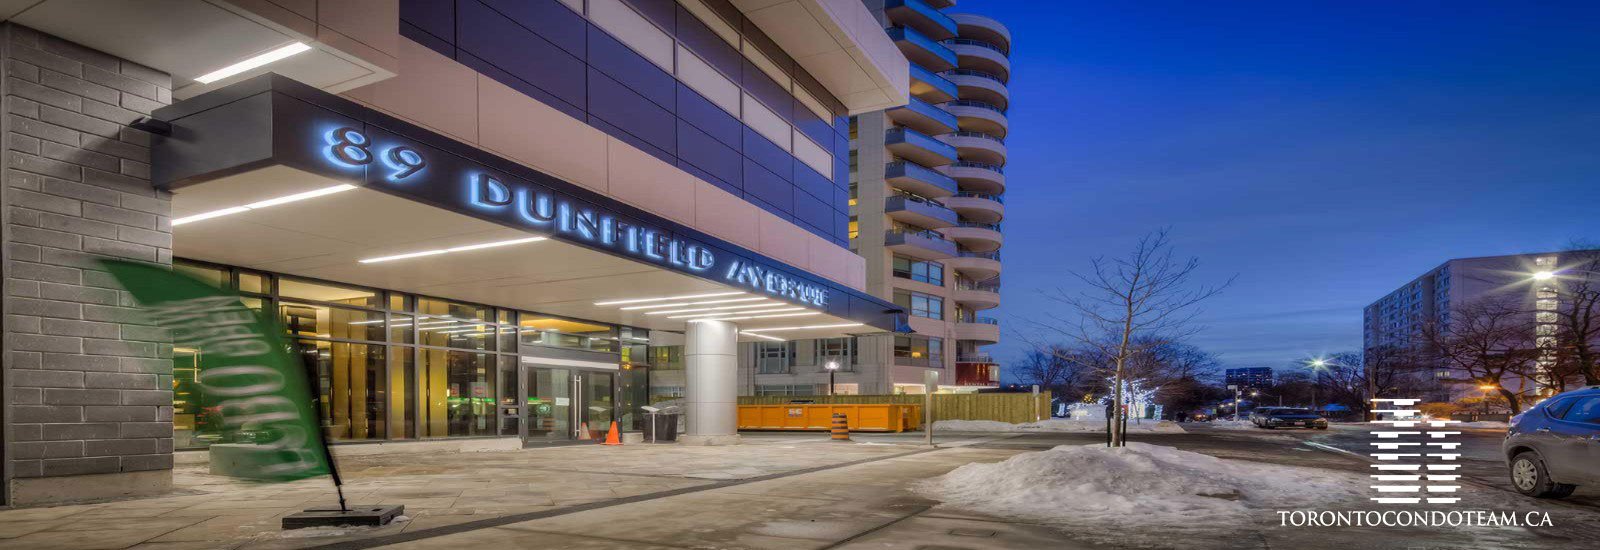 89 Dunfield Avenue Condos For Sale